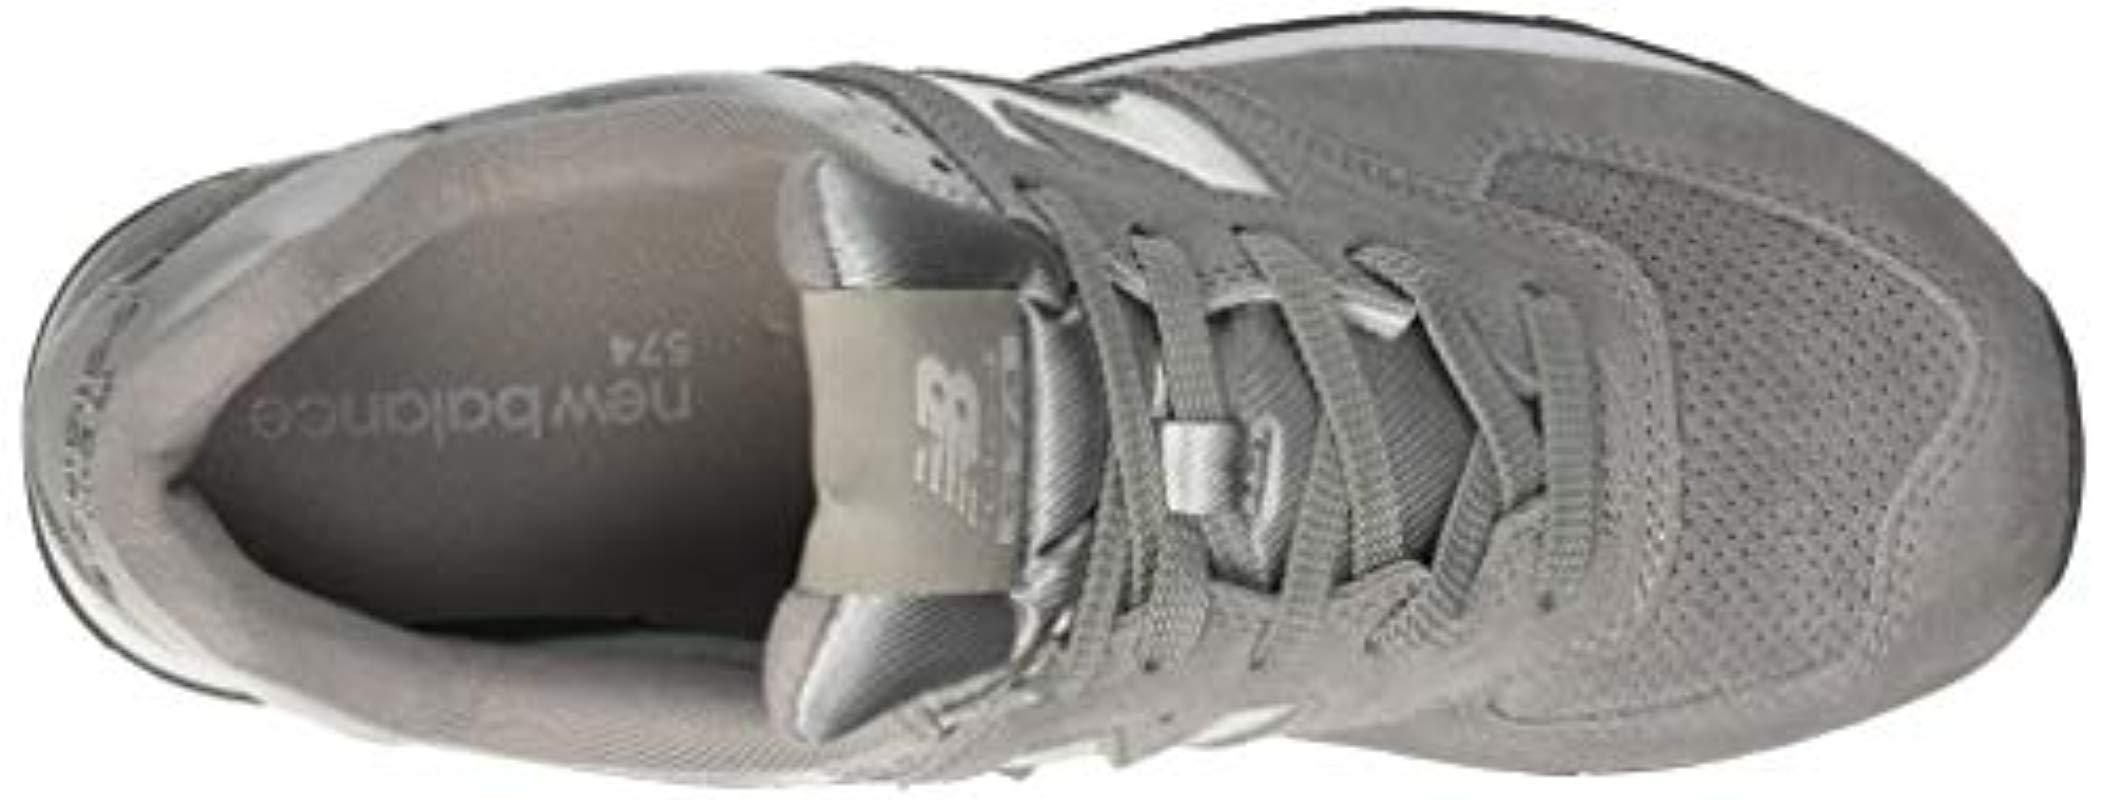 save off d6352 b10c4 New Balance 574v2 Trainers in Gray - Save 75% - Lyst